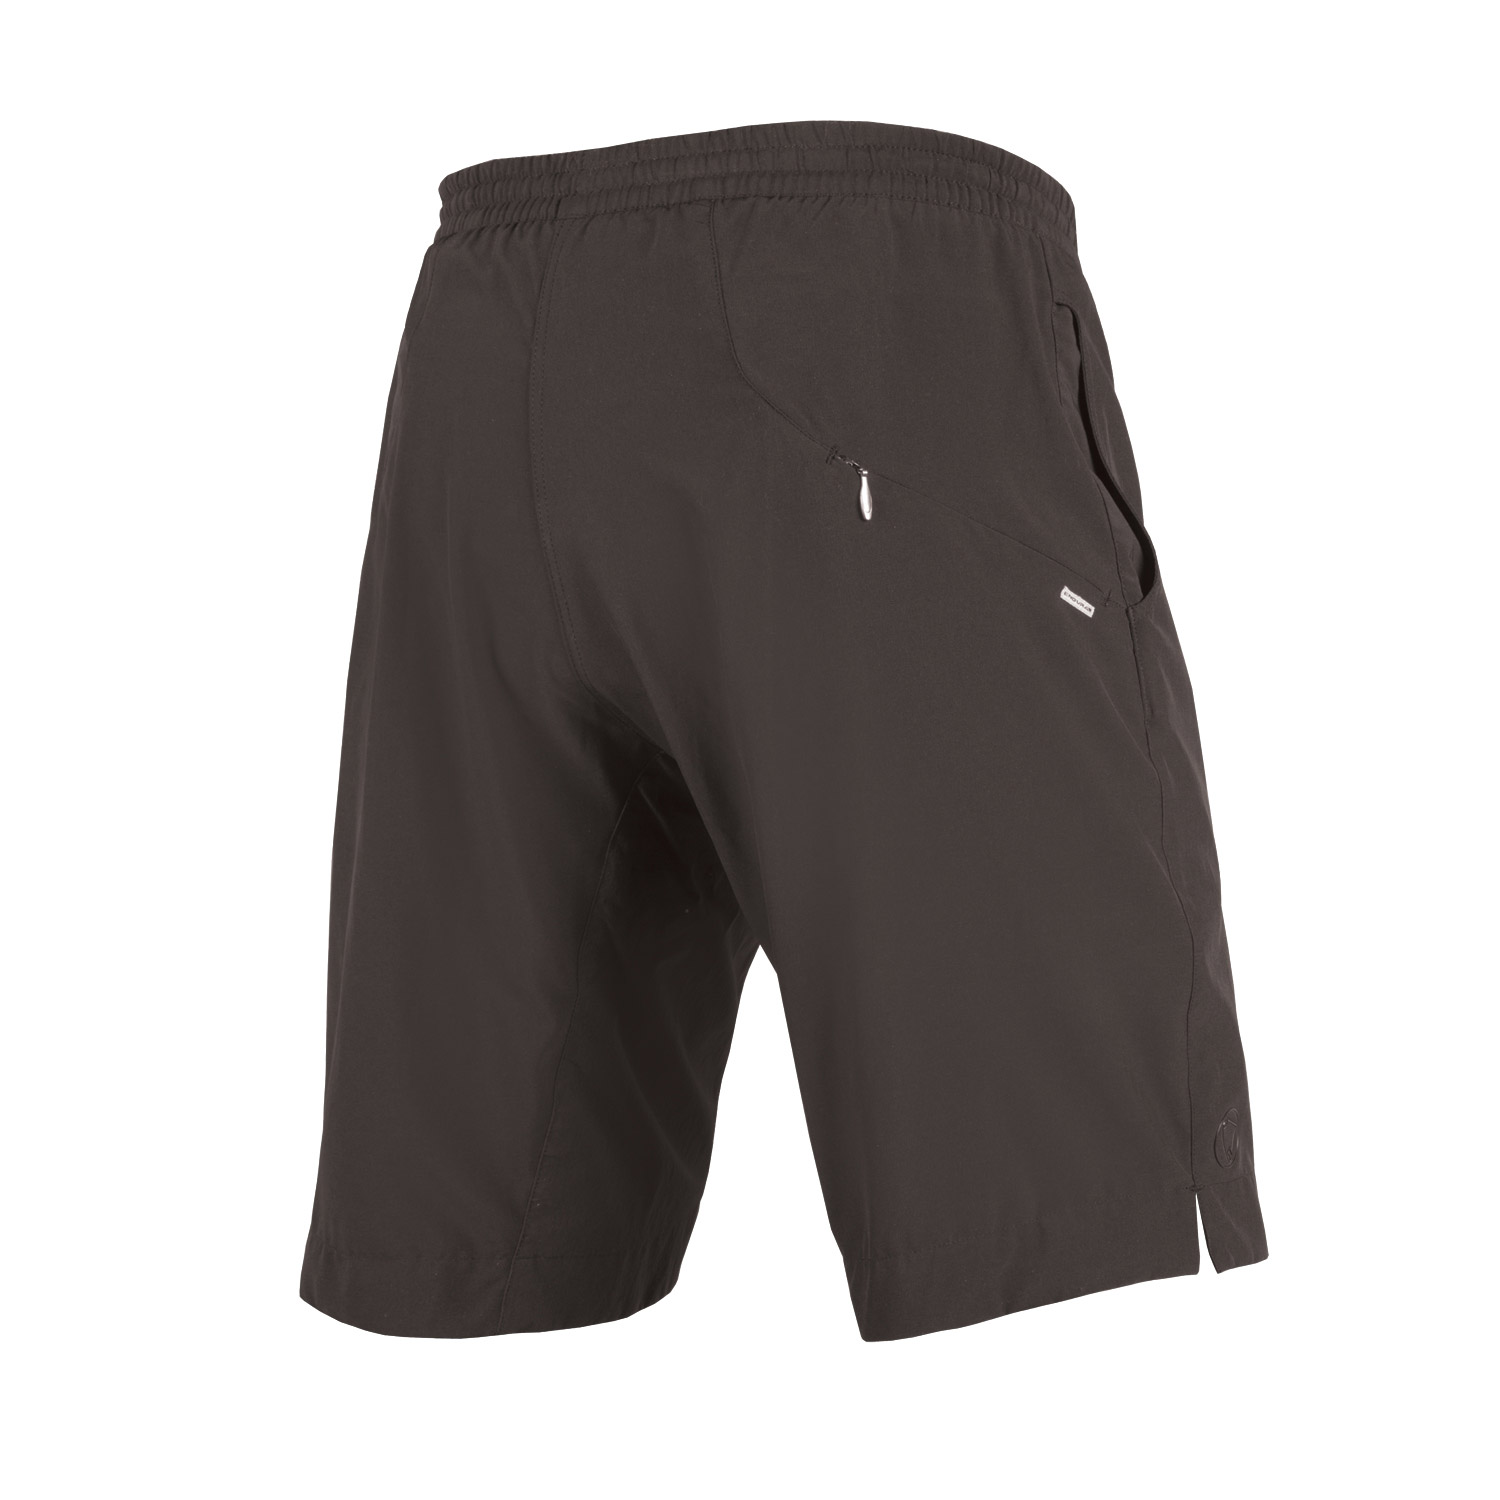 Trekkit Short Black